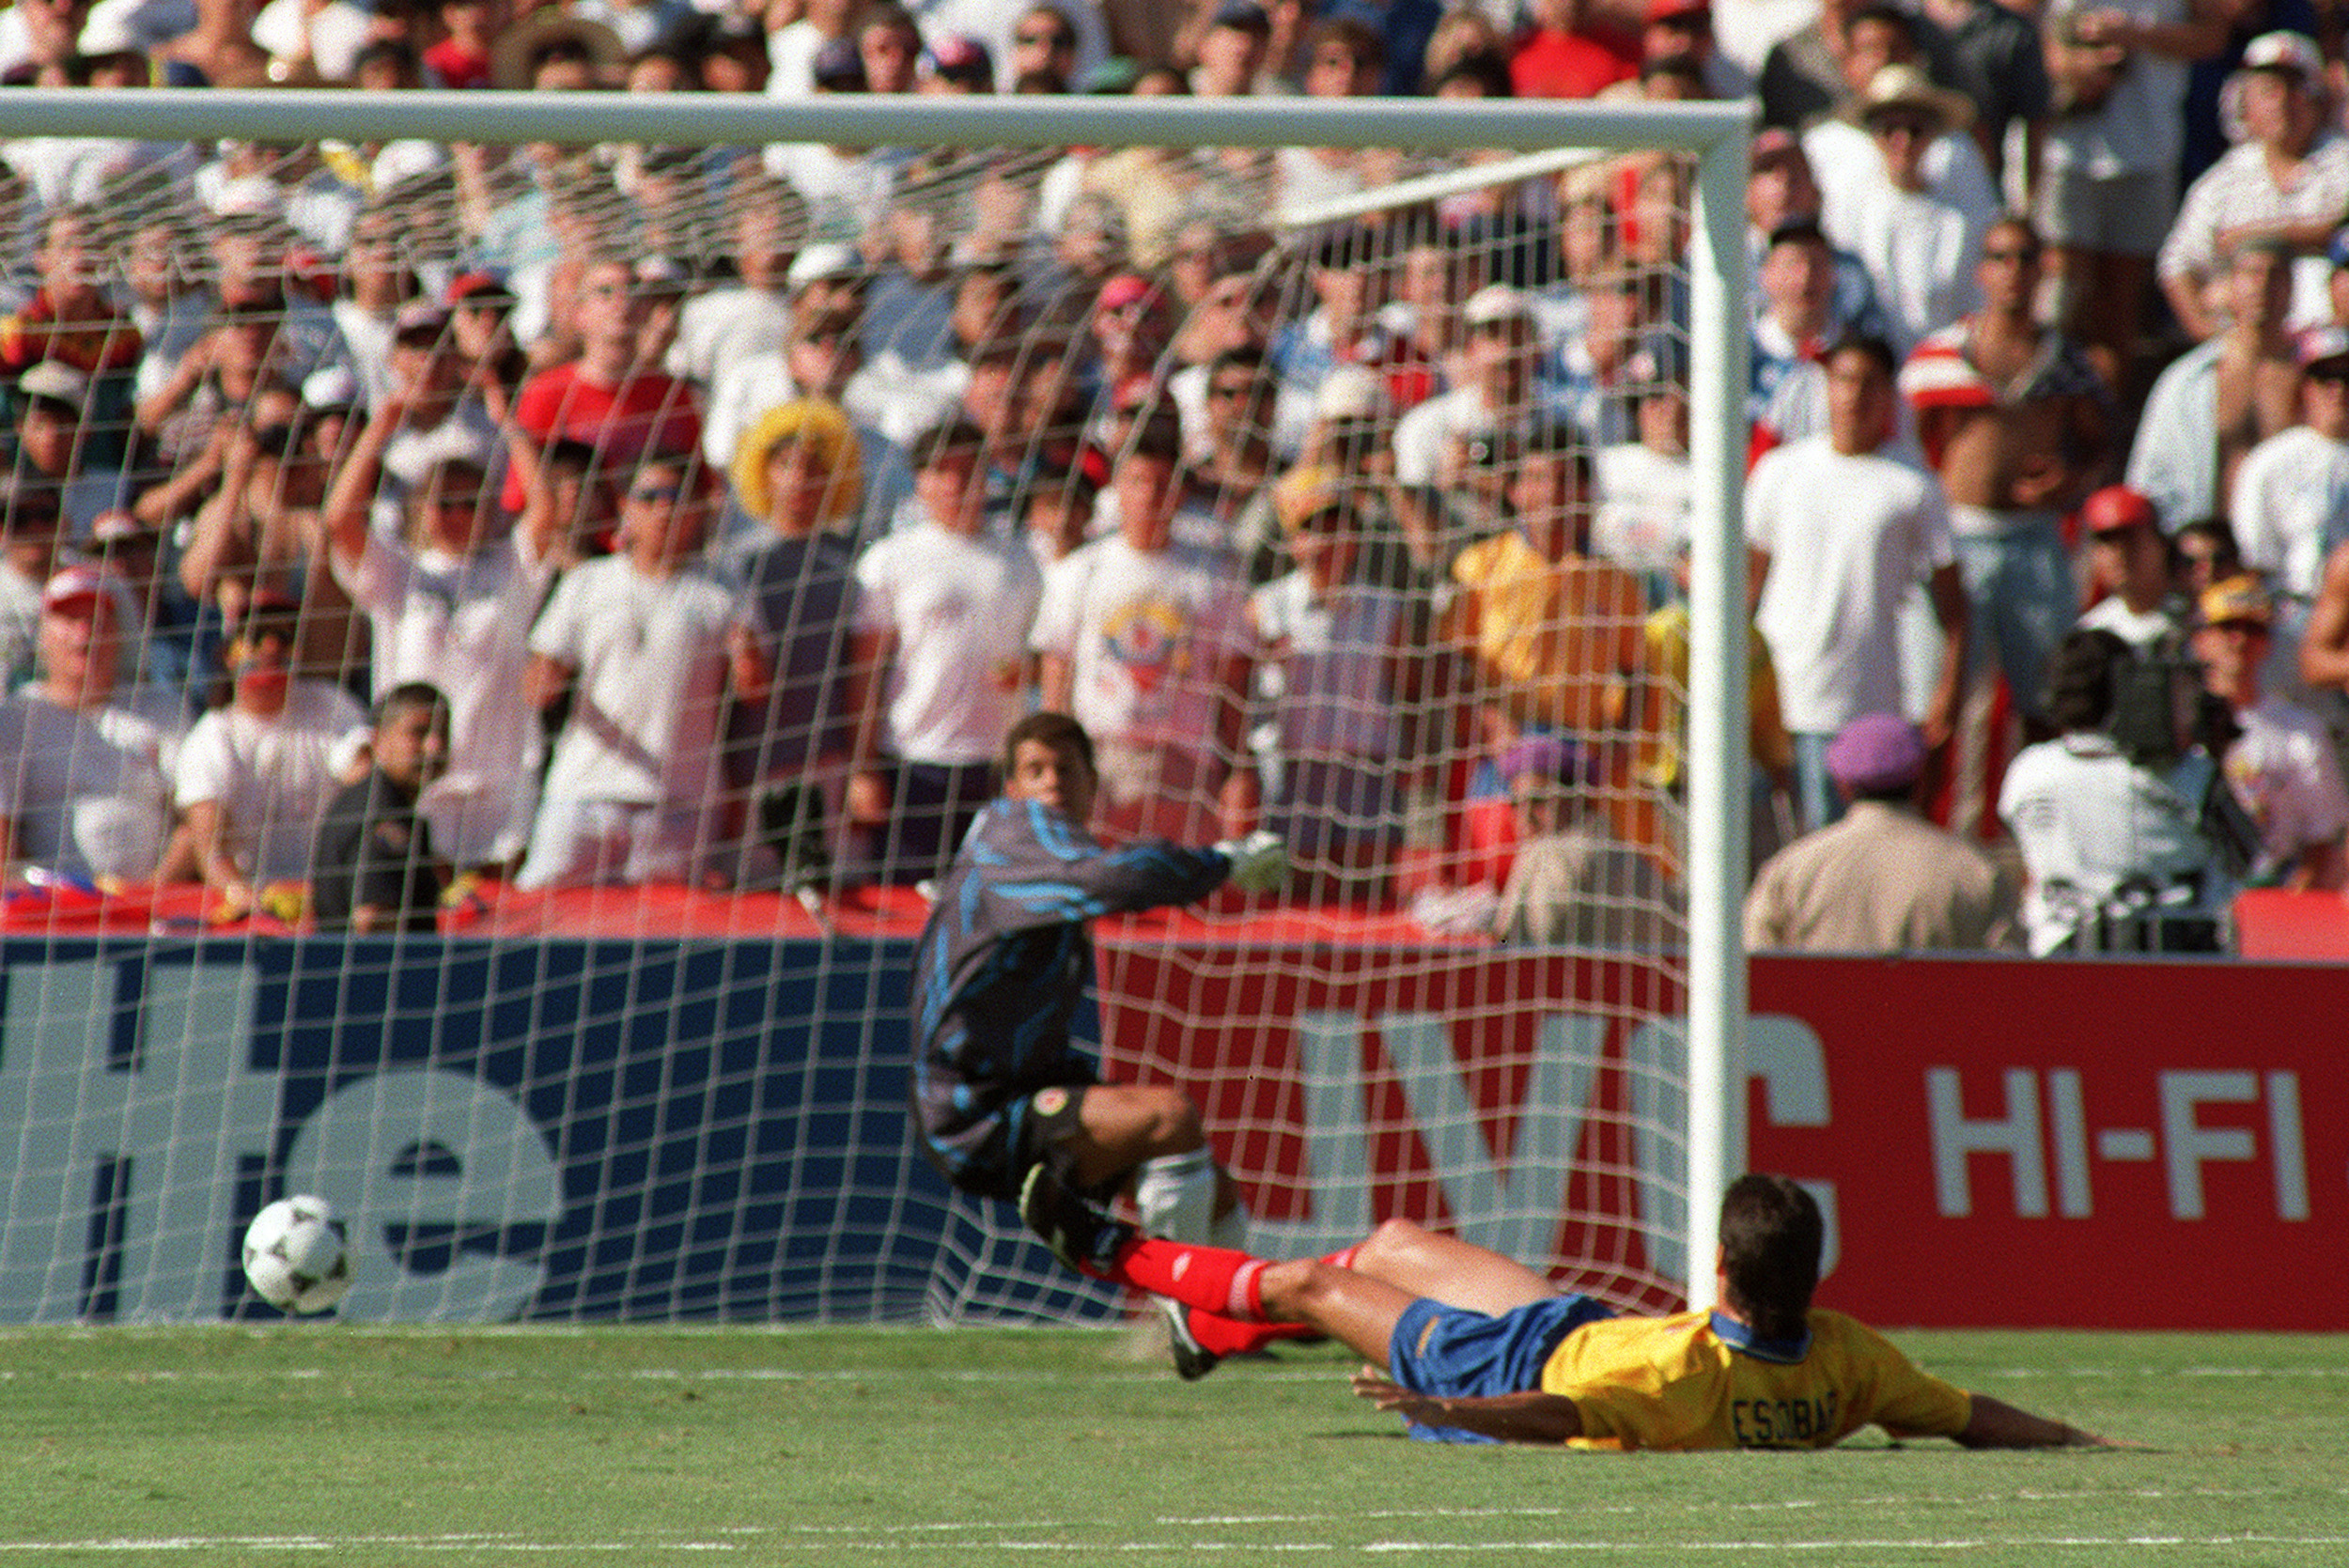 Colombian defender Andres Escobar lies on the ground after scoring an own goal past goalkeeper Oscar Cordoba while trying to stop a shot from US forward John Harkes during the World Cup first round soccer match between the United States and Colombia 22 June 1994 in Los Angeles. The United States beat Colombia 2-1. AFP PHOTO/ROMEO GACAD (Photo by Romeo GACAD / AFP) (Photo by ROMEO GACAD/AFP via Getty Images)